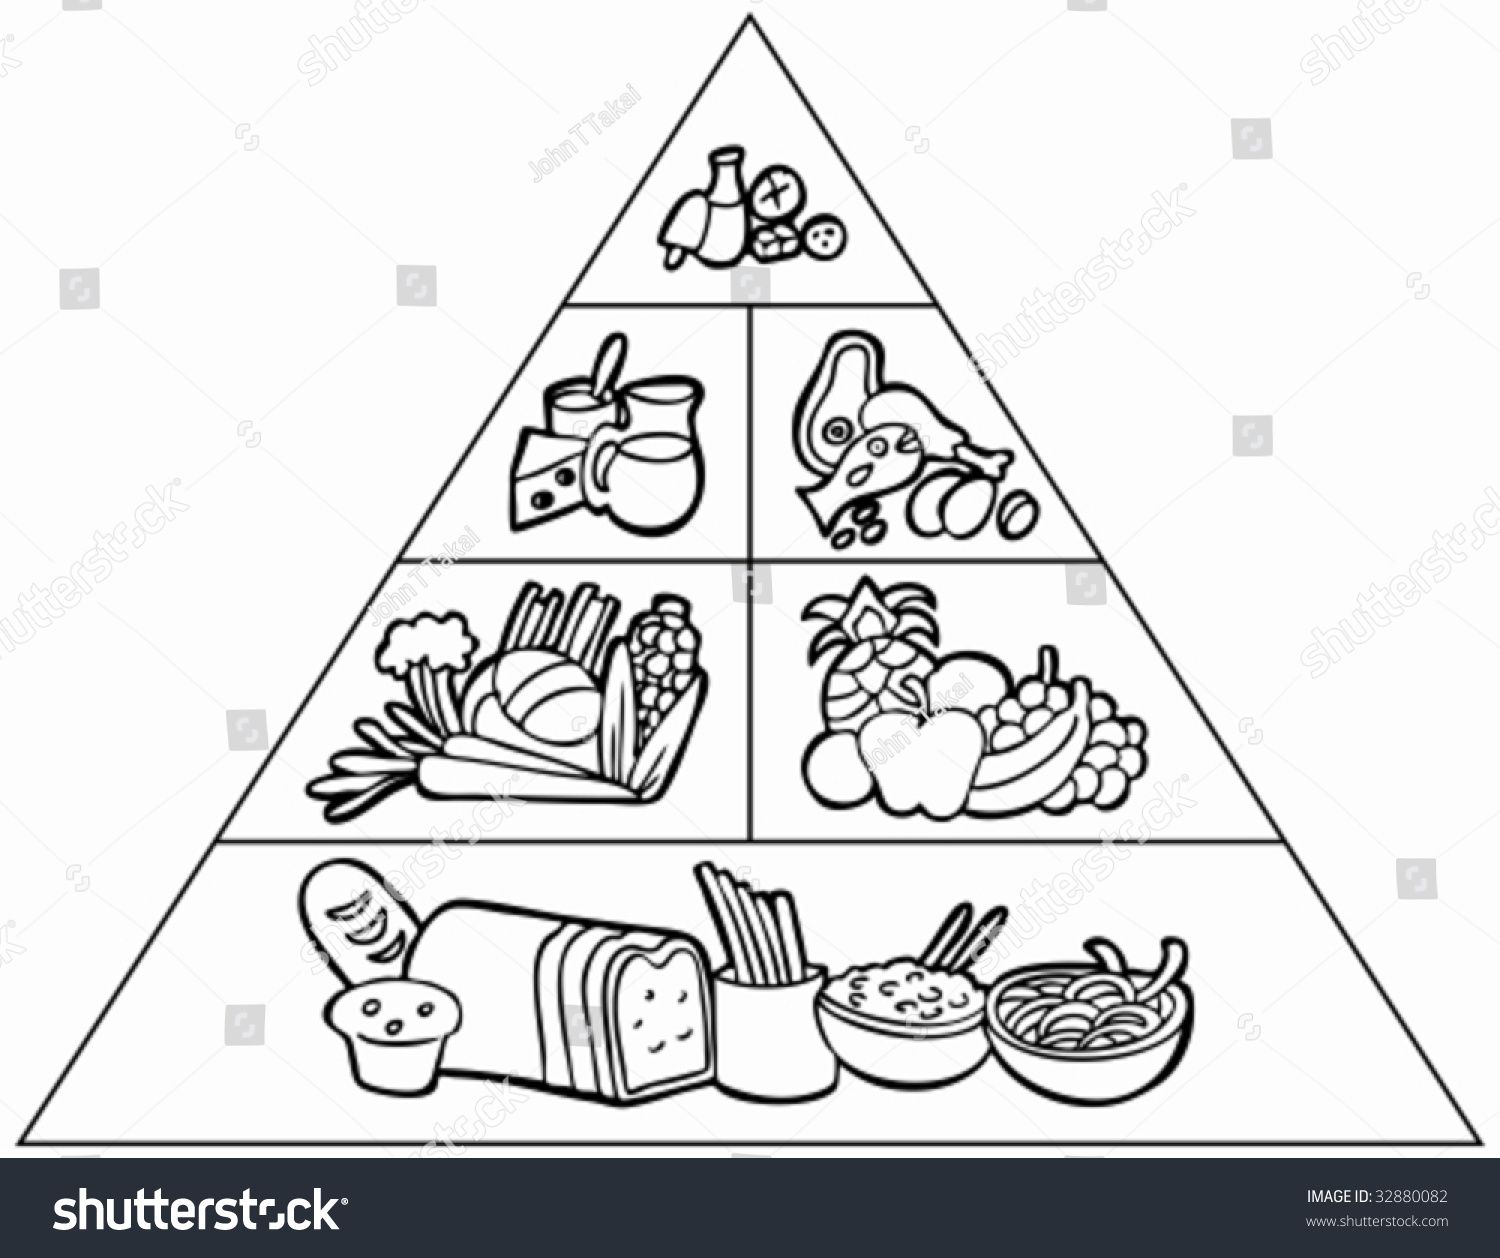 Cartoon Food Pyramid Line Art